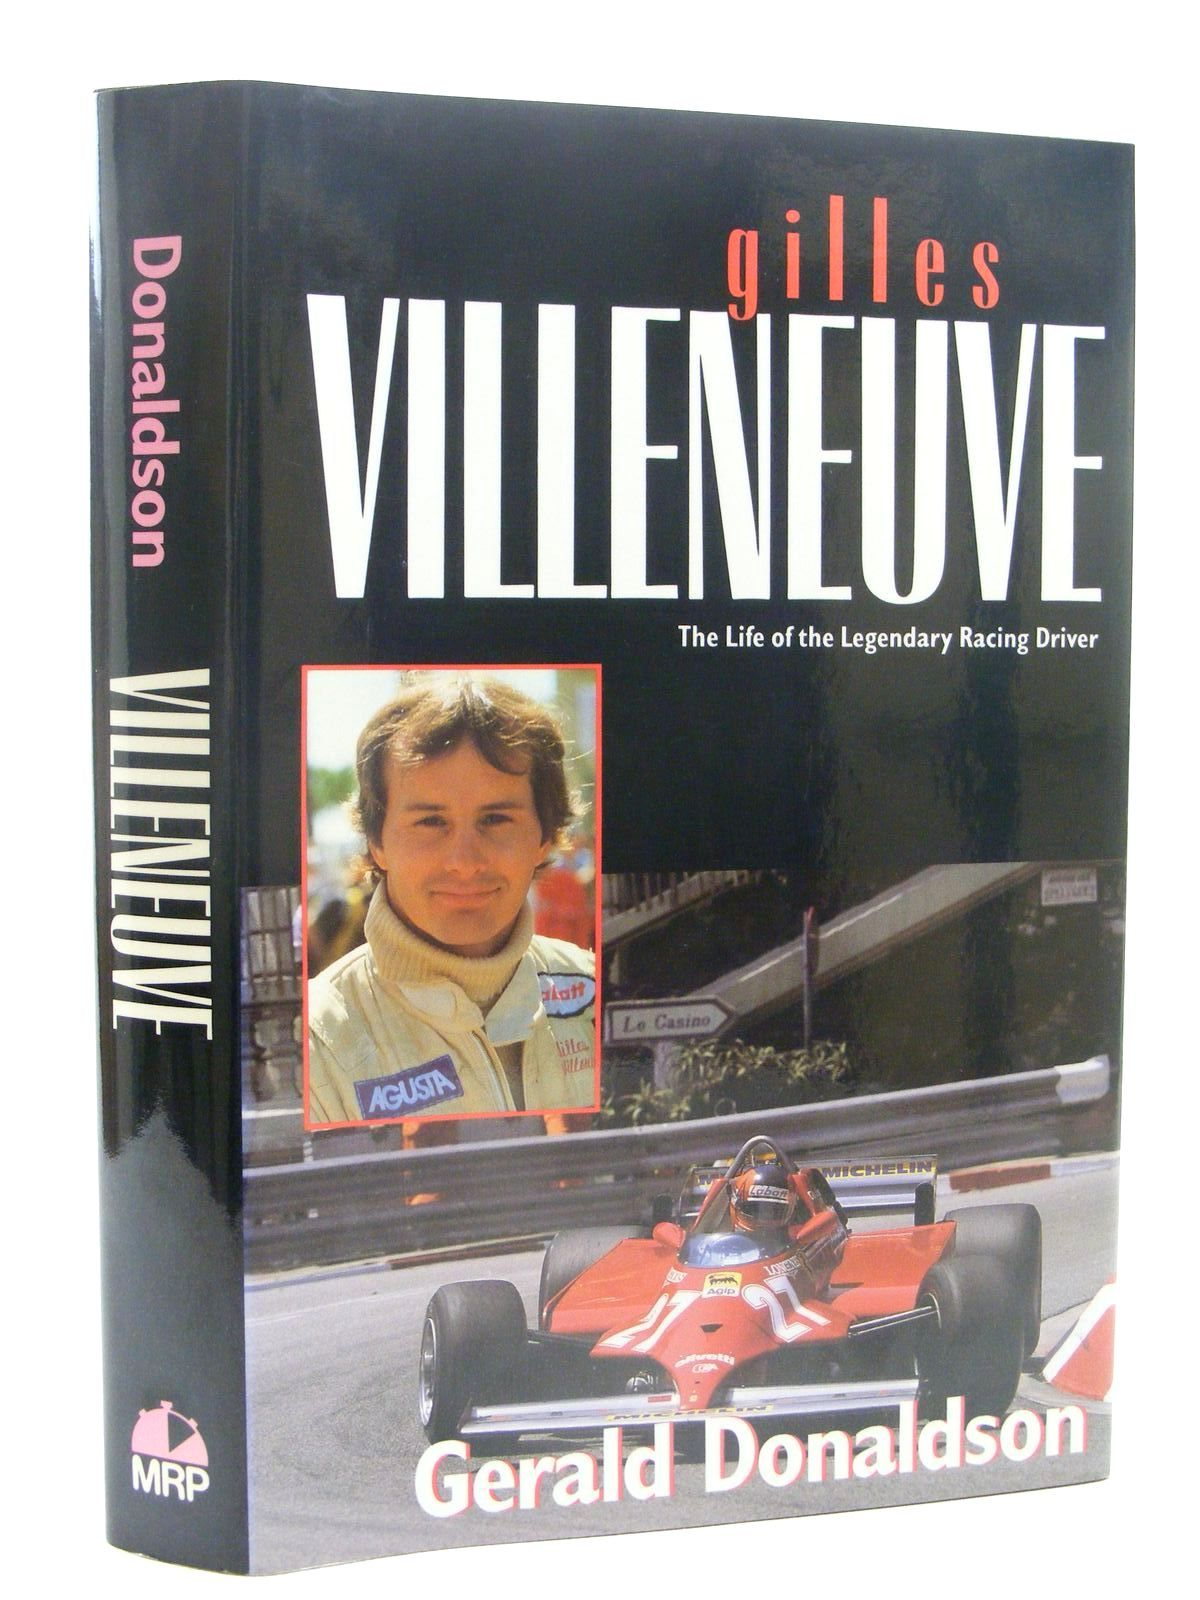 Photo of GILLES VILLENEUVE THE LIFE OF THE LEGENDARY RACING DRIVER written by Donaldson, Gerald published by Motor Racing Publications Ltd. (STOCK CODE: 1610318)  for sale by Stella & Rose's Books